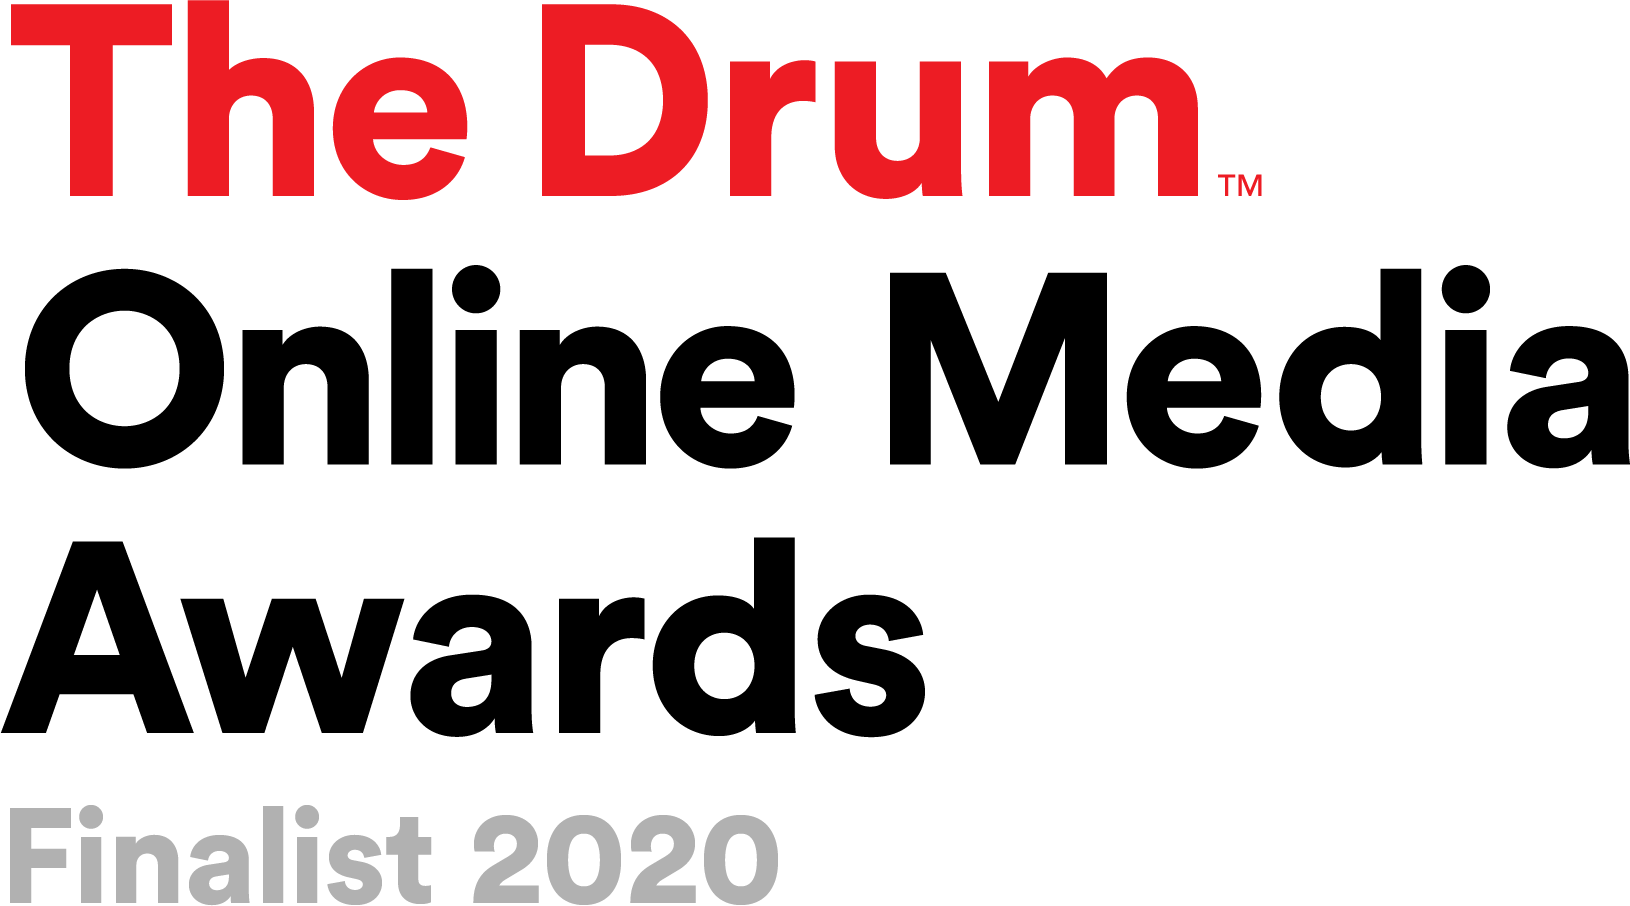 Online Media Awards Finalist